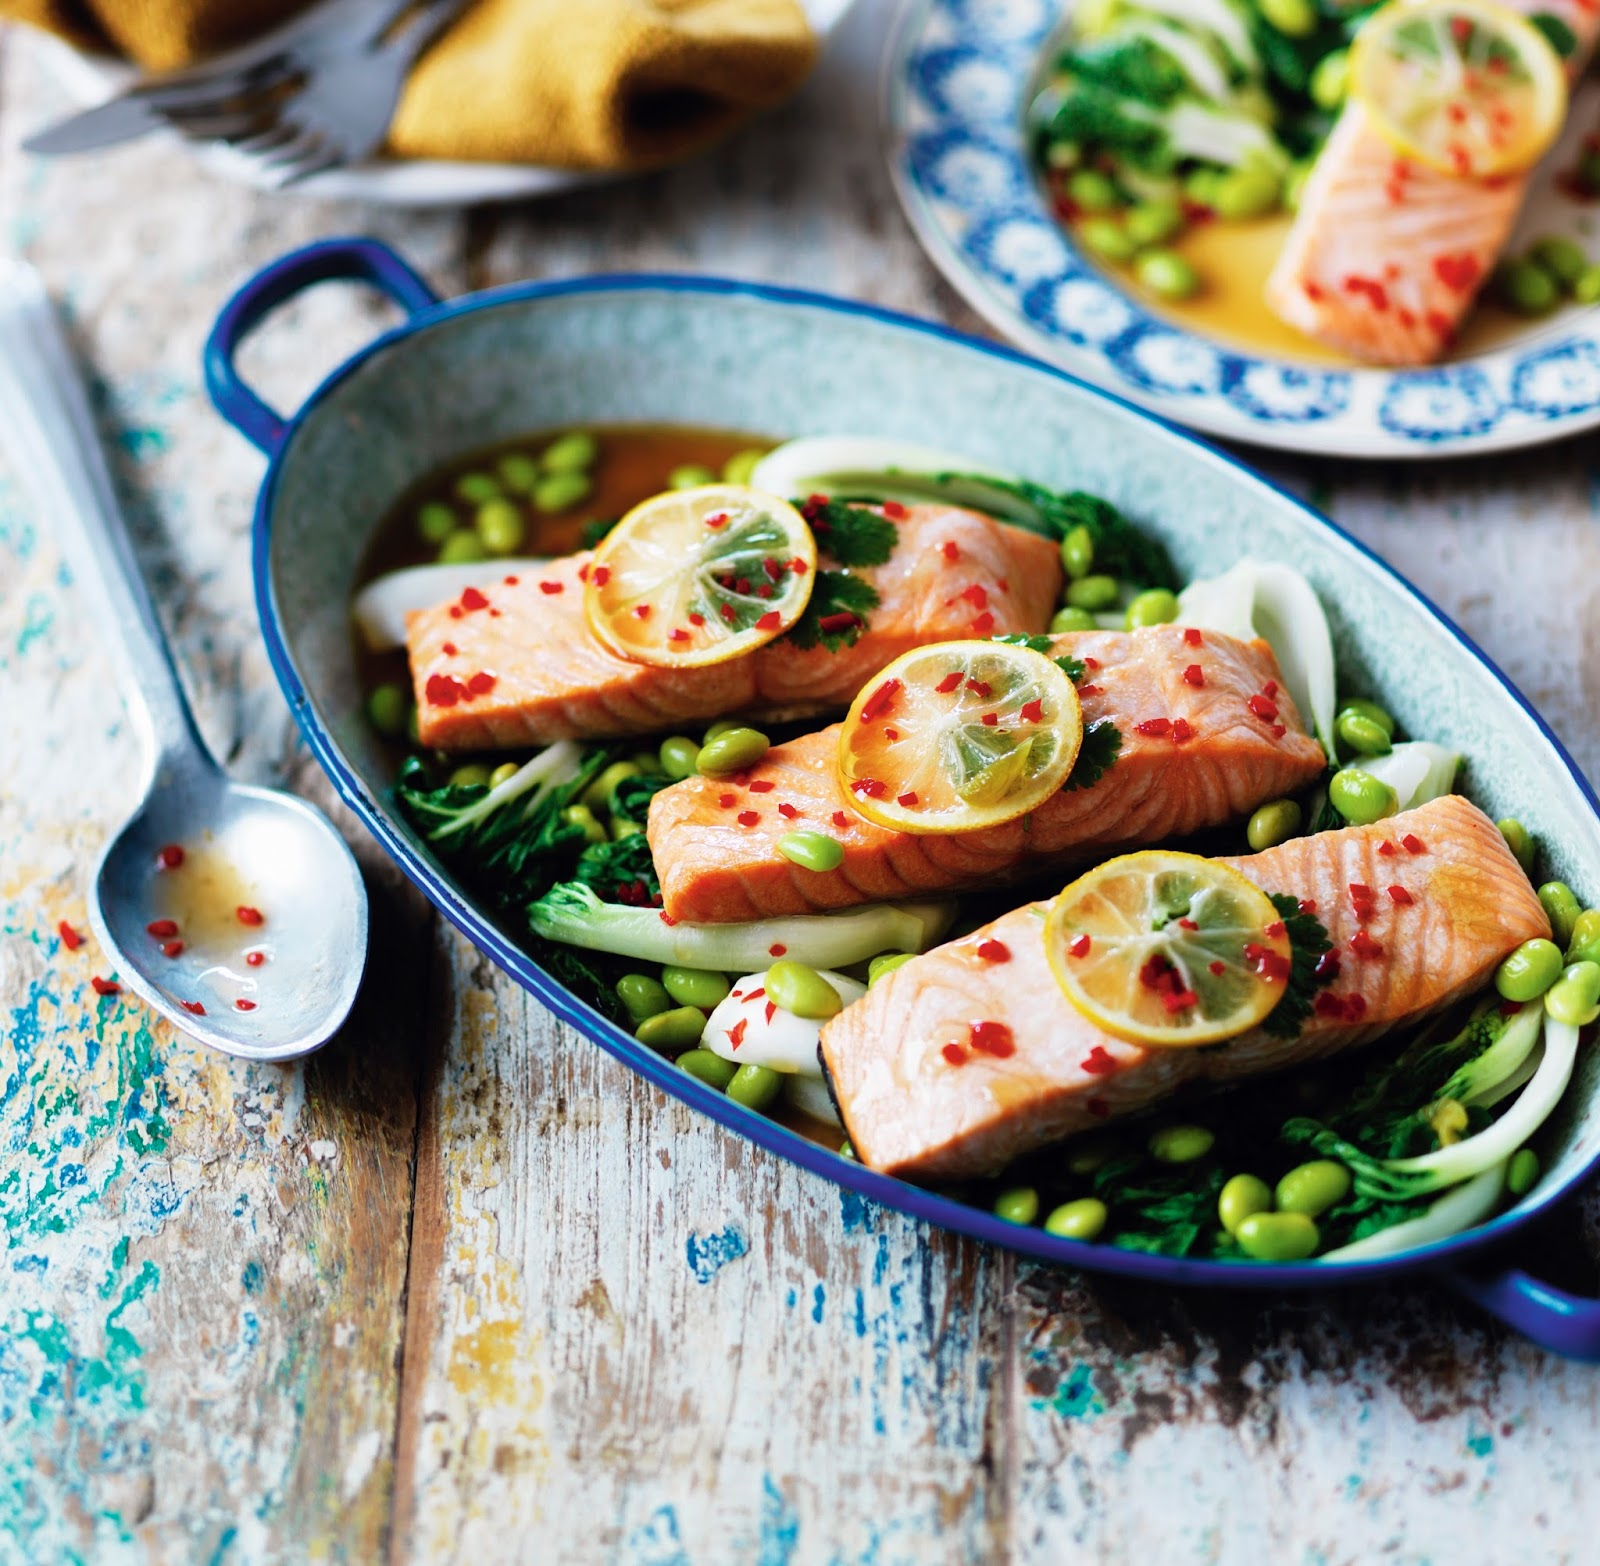 LOVE Life Steam-Baked Teriyaki-Style Salmon